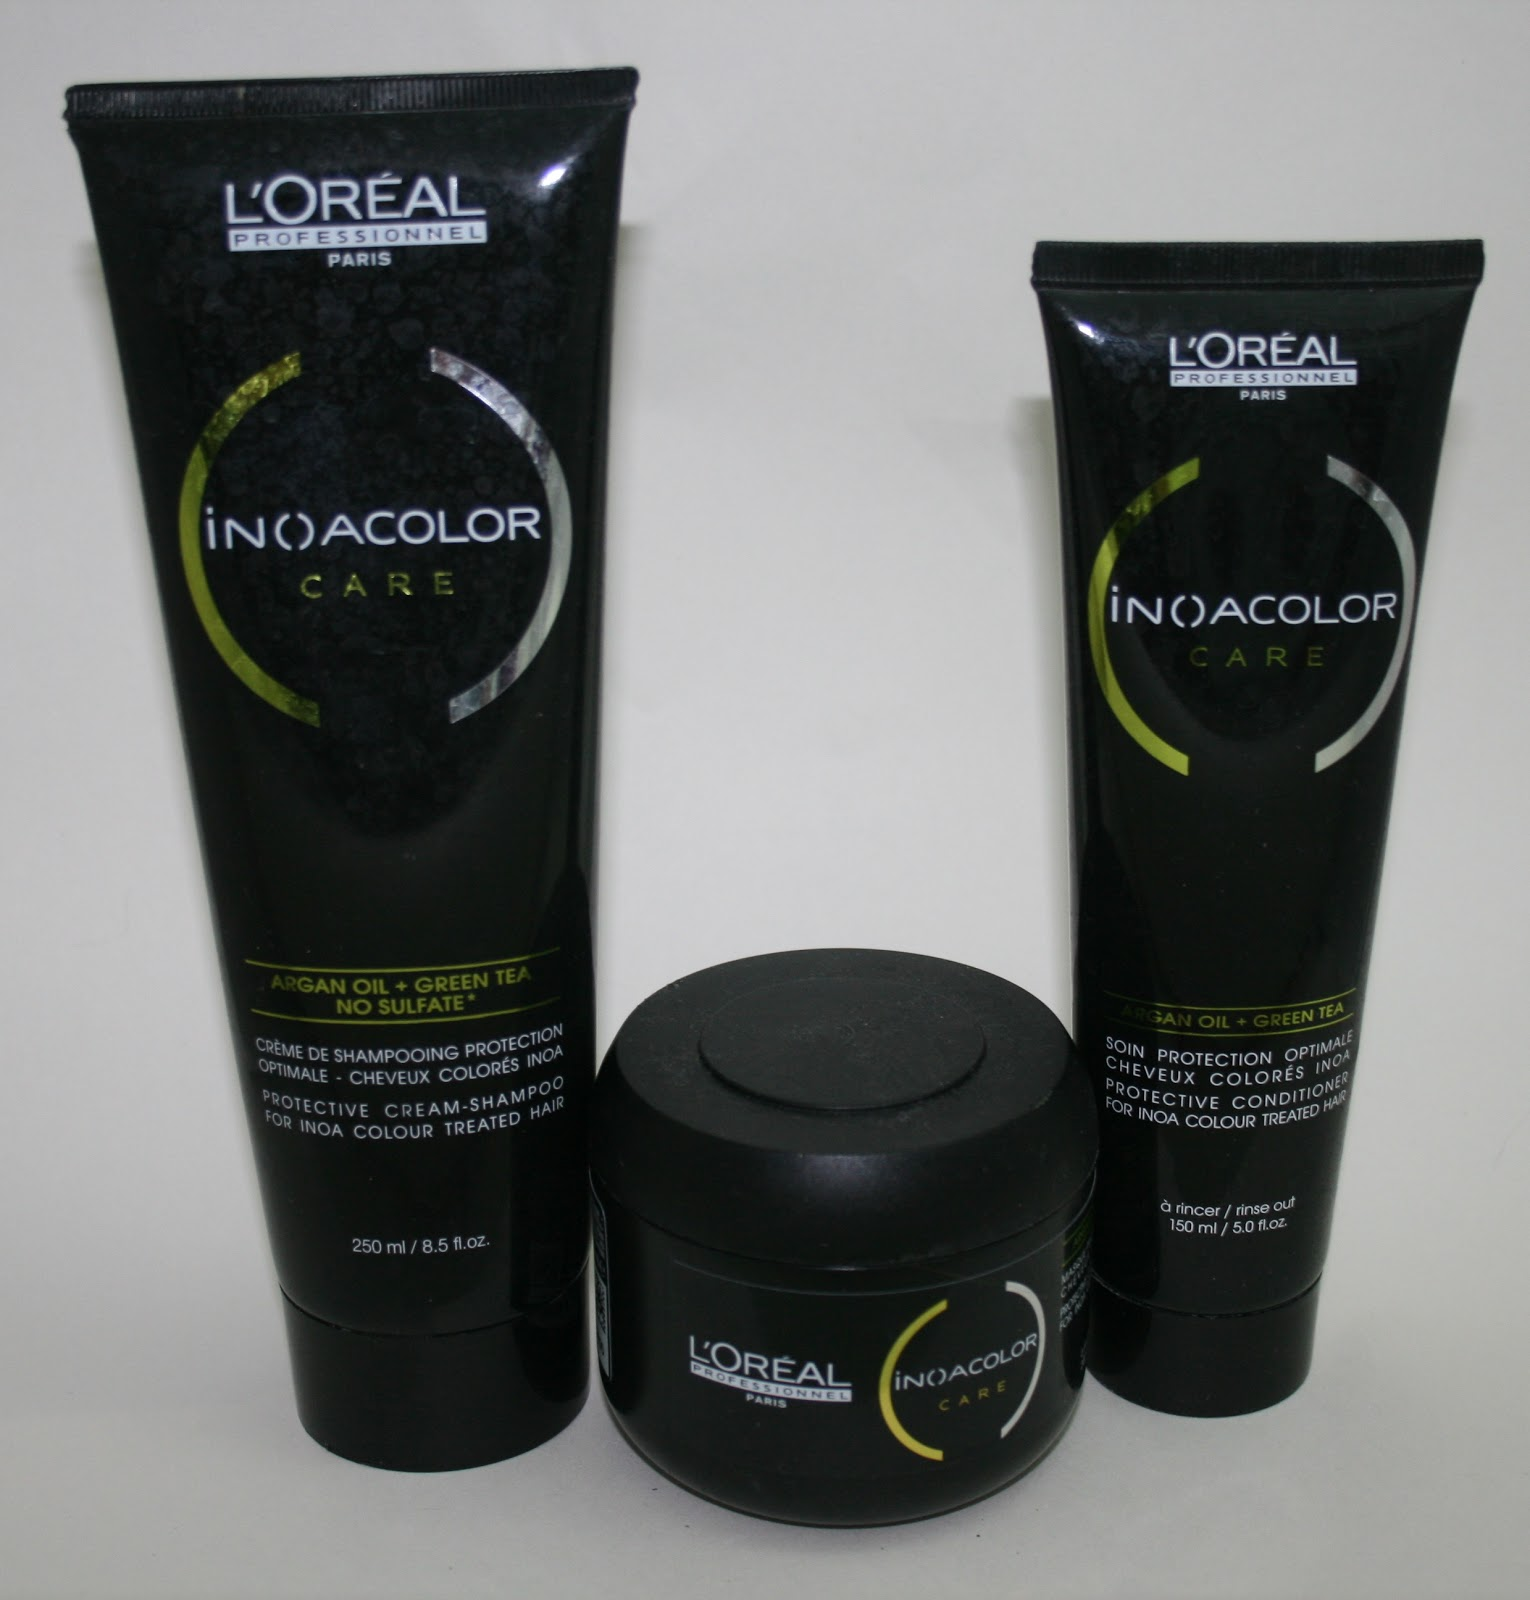 Loreal Inoa Colour Care Shampoo Conditioner And Masque Beauty